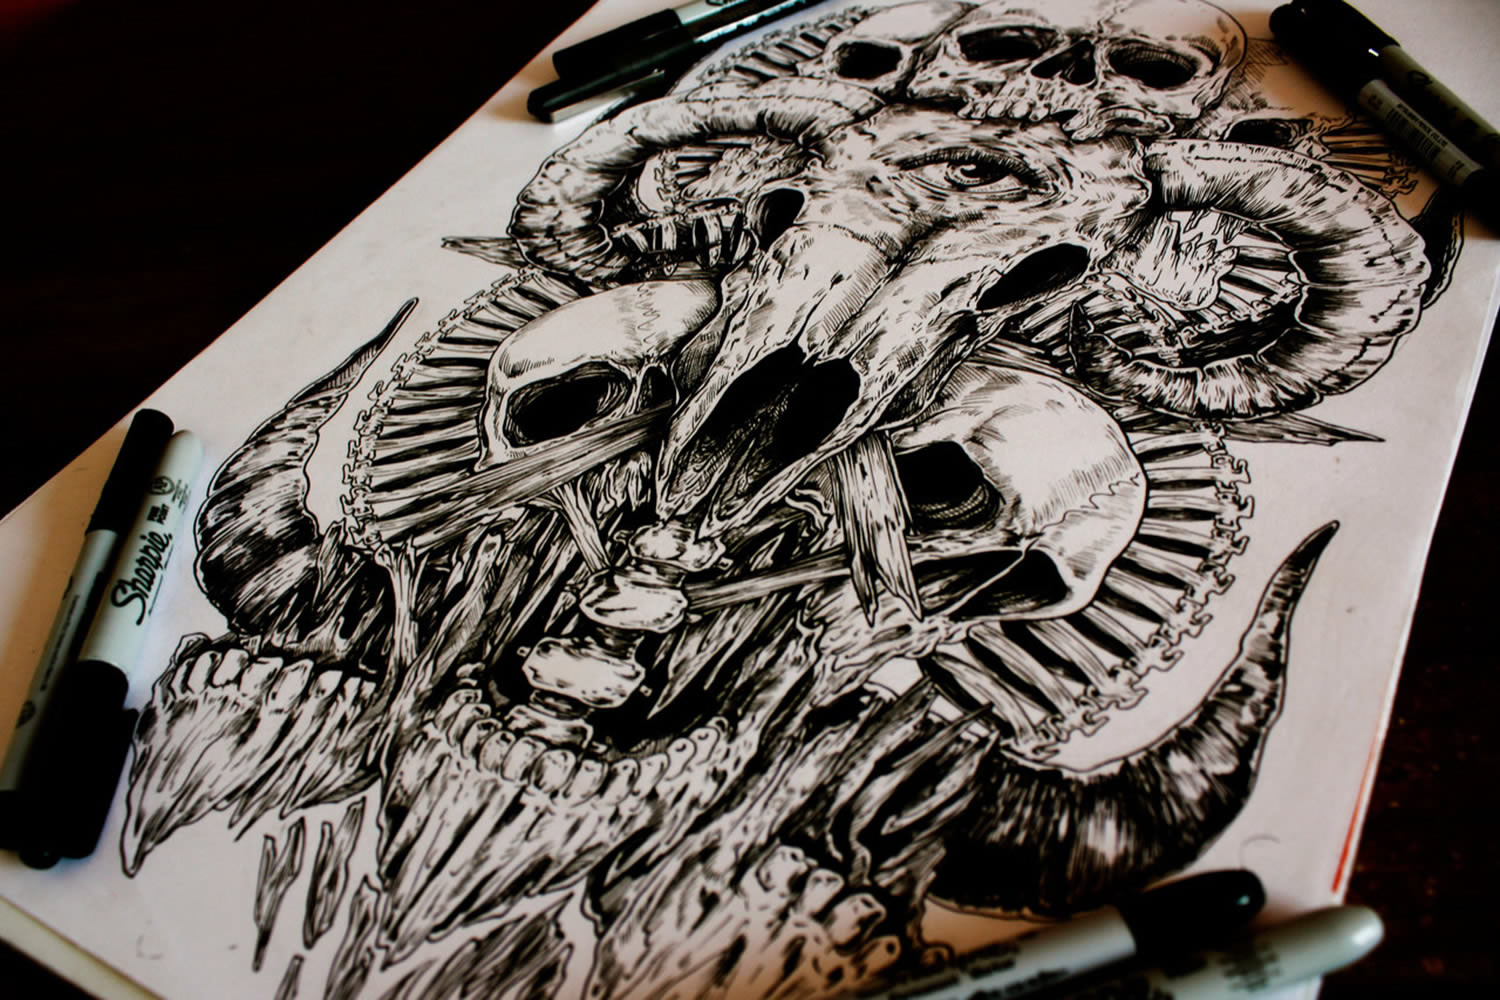 animal skull and human skull drawing by e.g. the freak